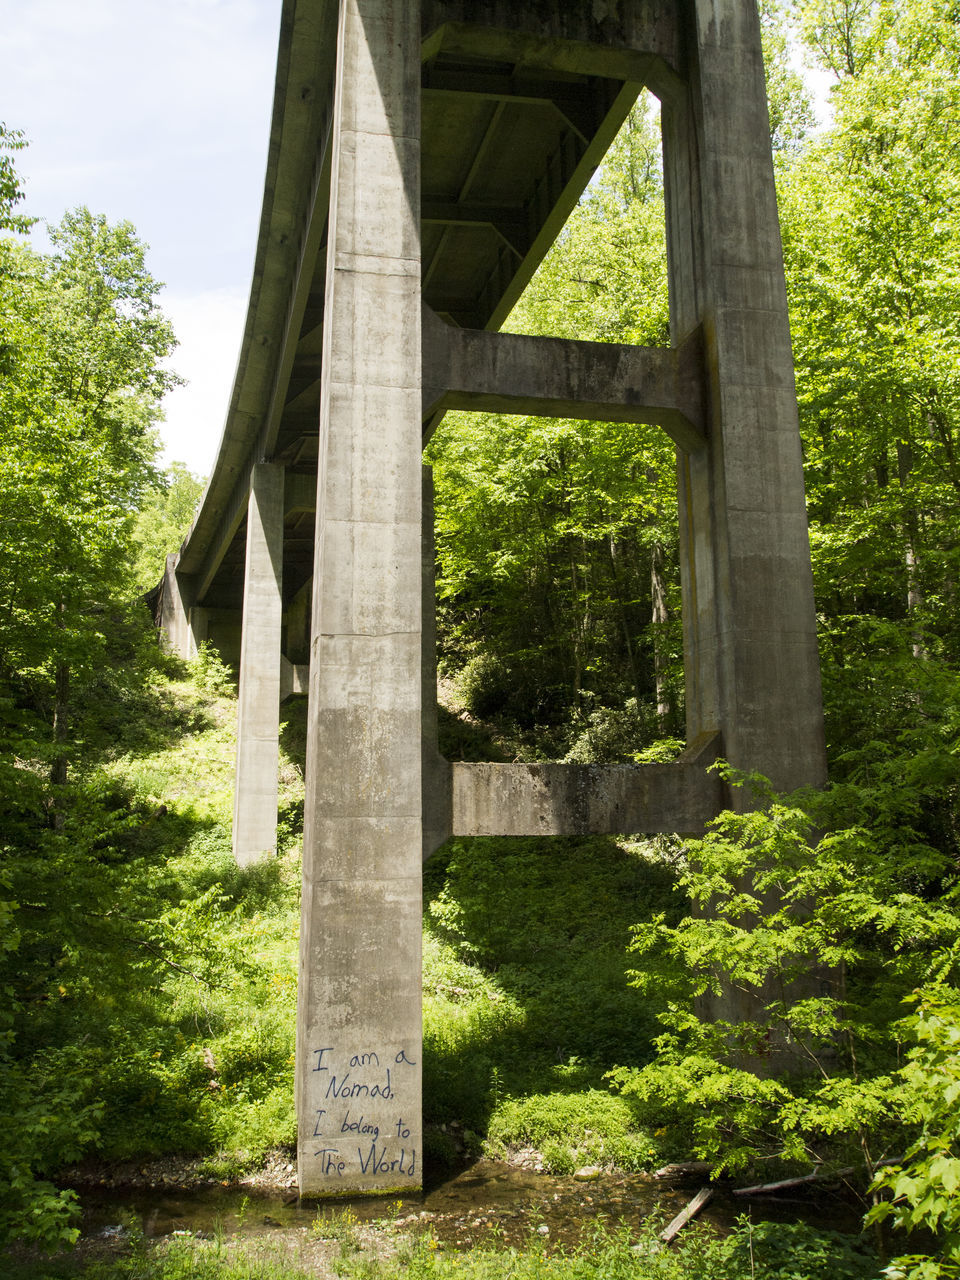 bridge - man made structure, connection, architecture, built structure, tree, architectural column, outdoors, below, no people, low angle view, day, underneath, nature